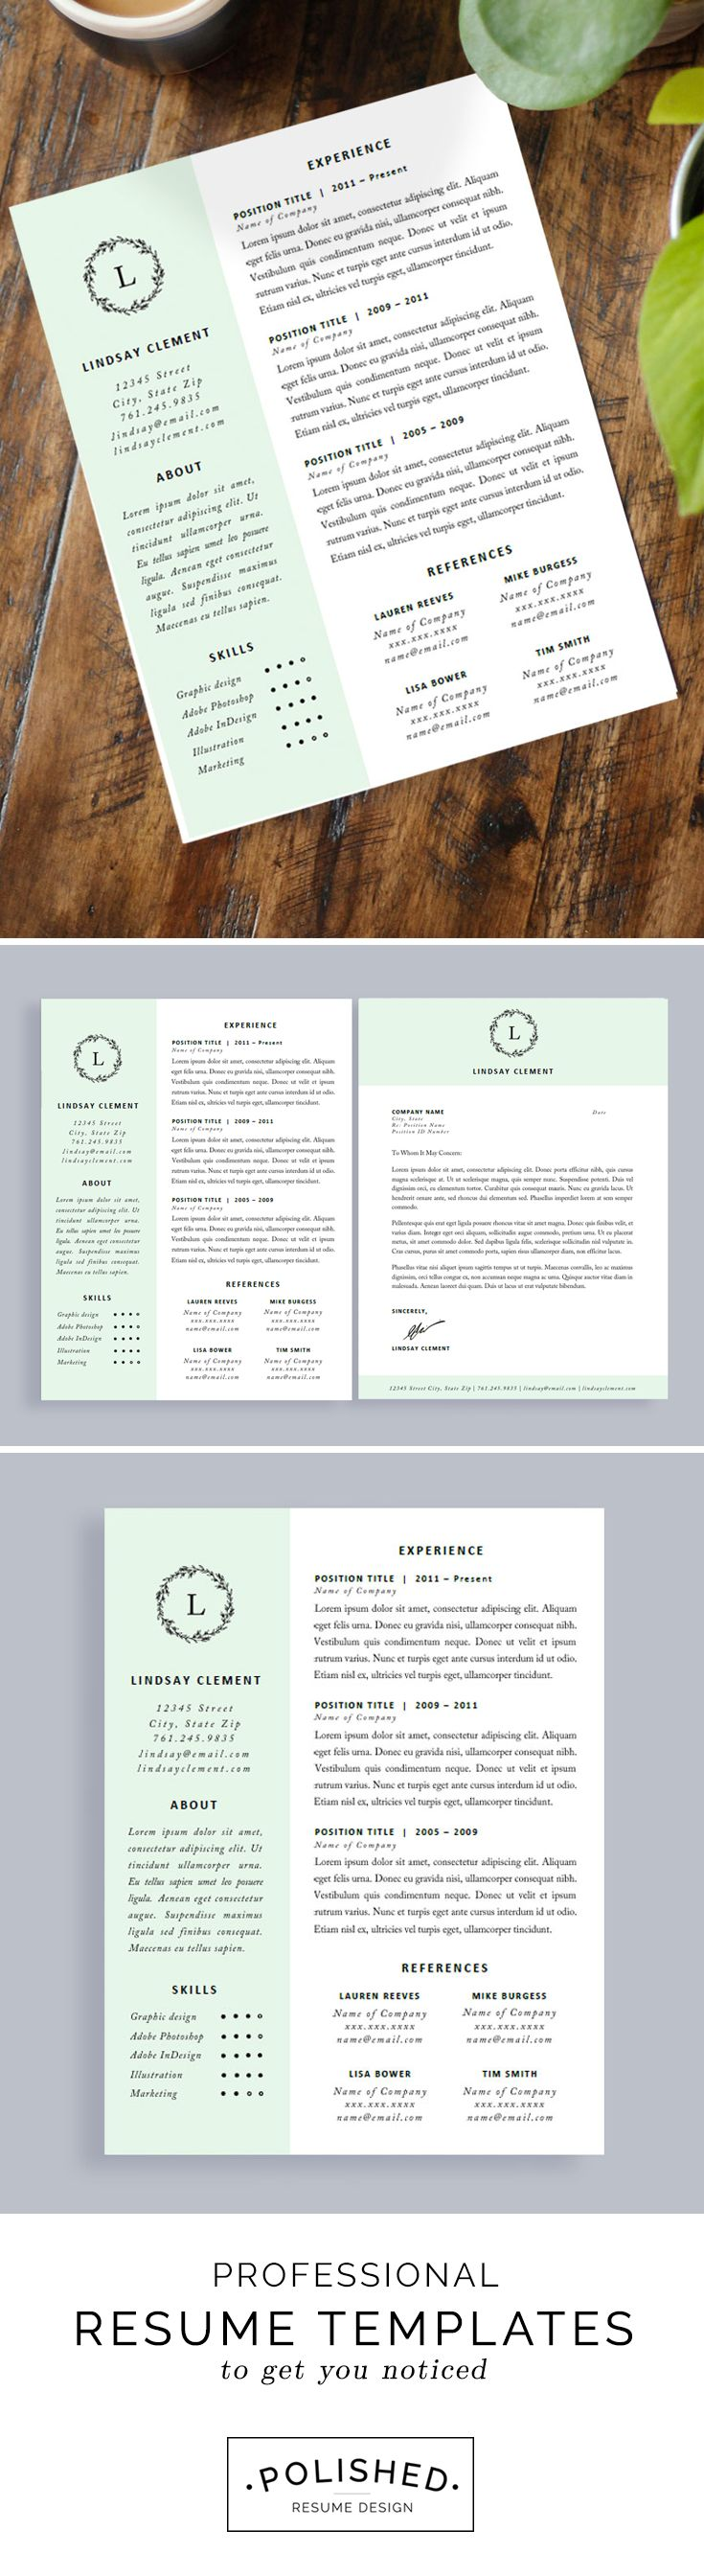 Functional Resume Template Microsoft%0A Professional resume templates for Microsoft Word  Features   and   page  options plus a free